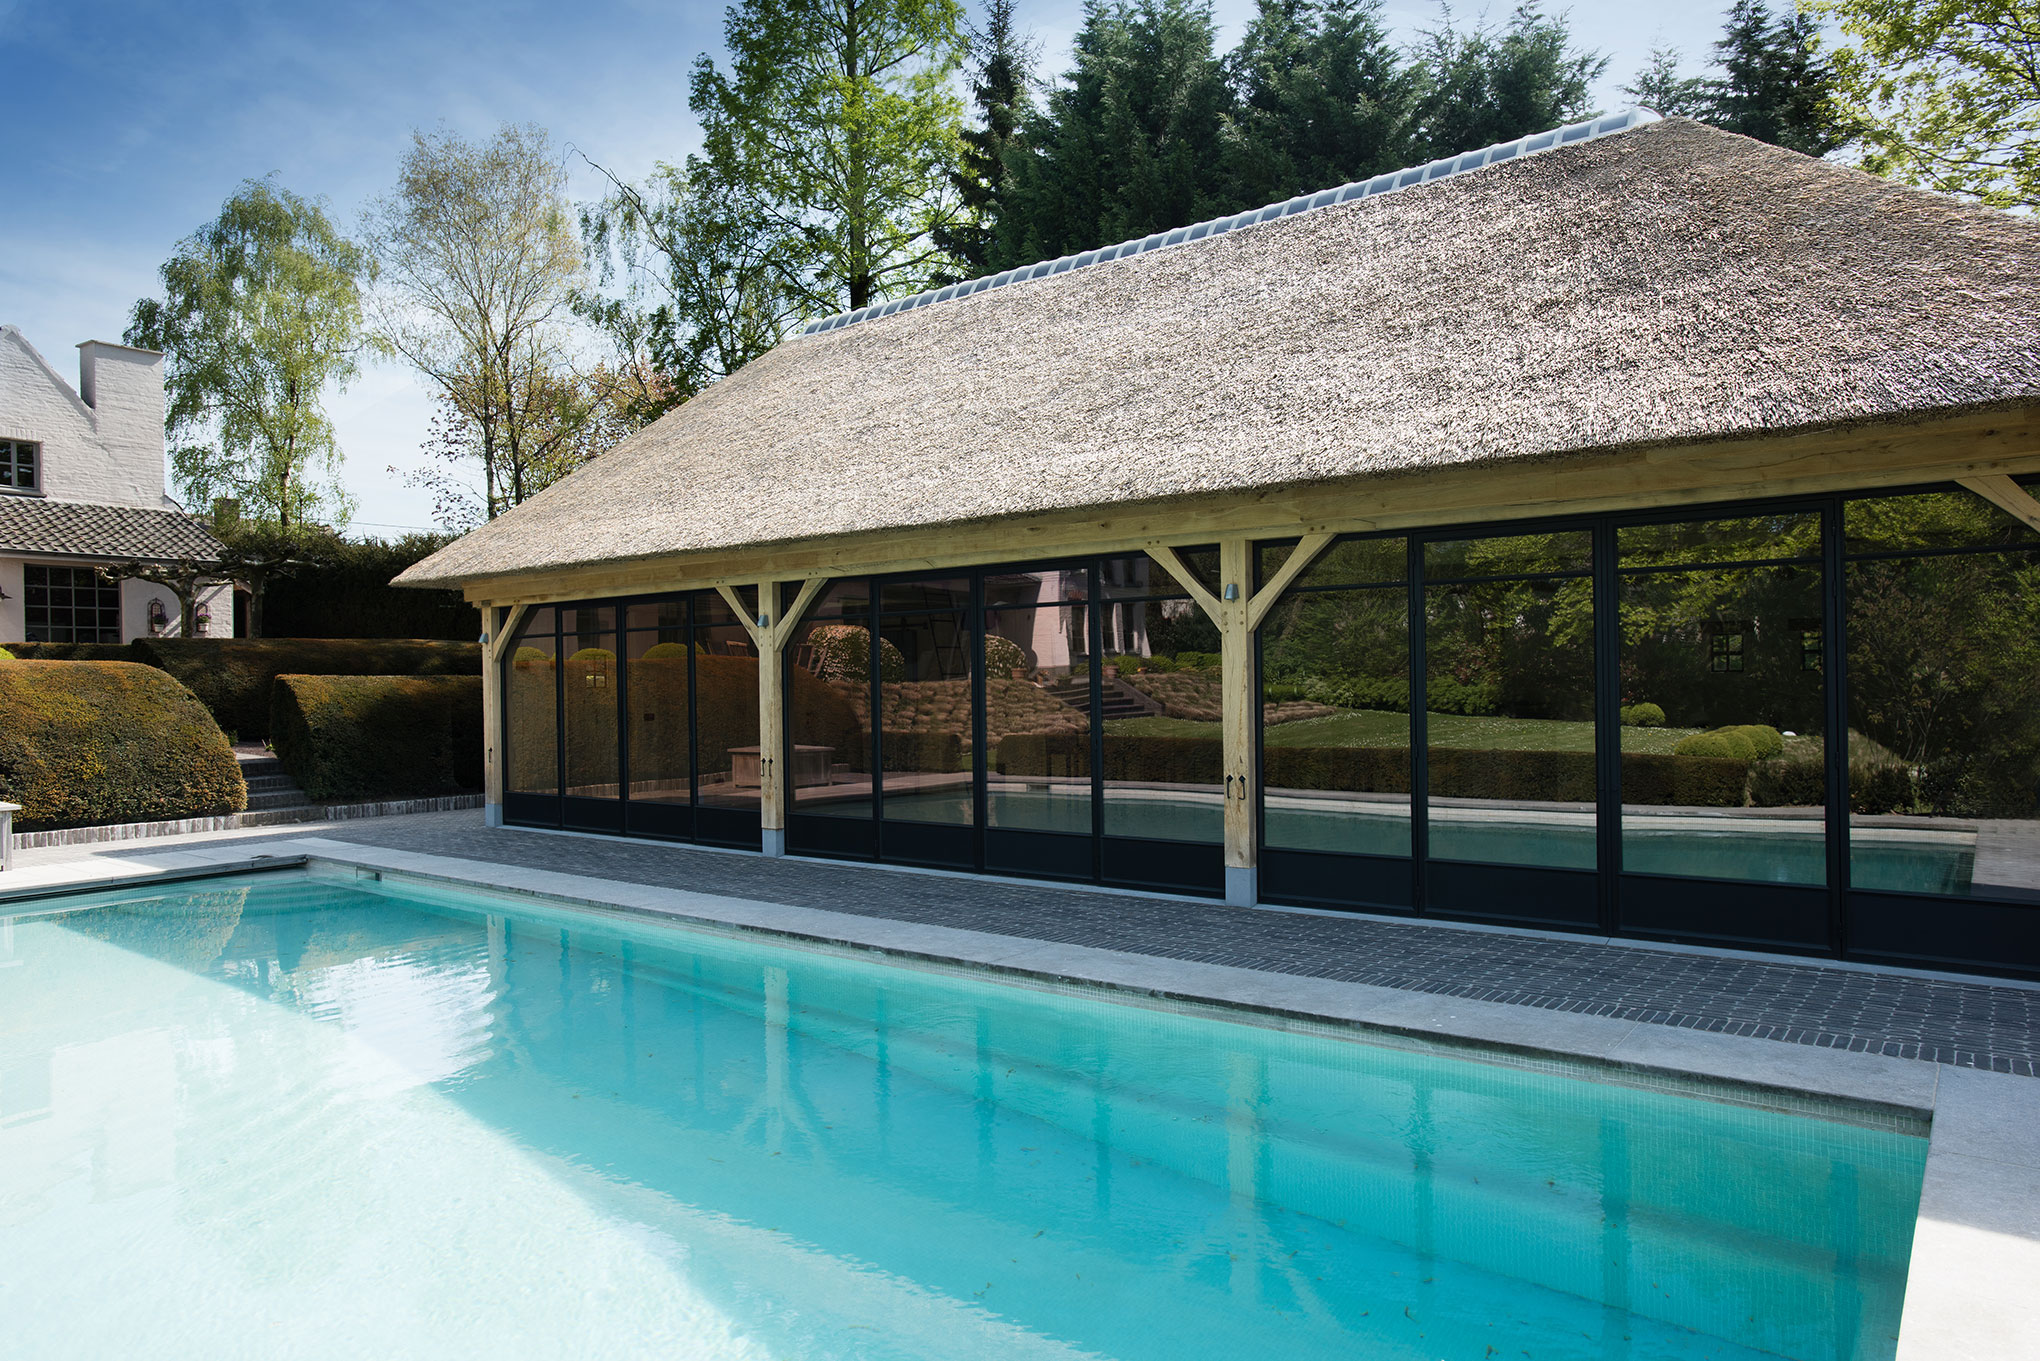 Exclusive two level pool house with thatched roof ronse livinlodge